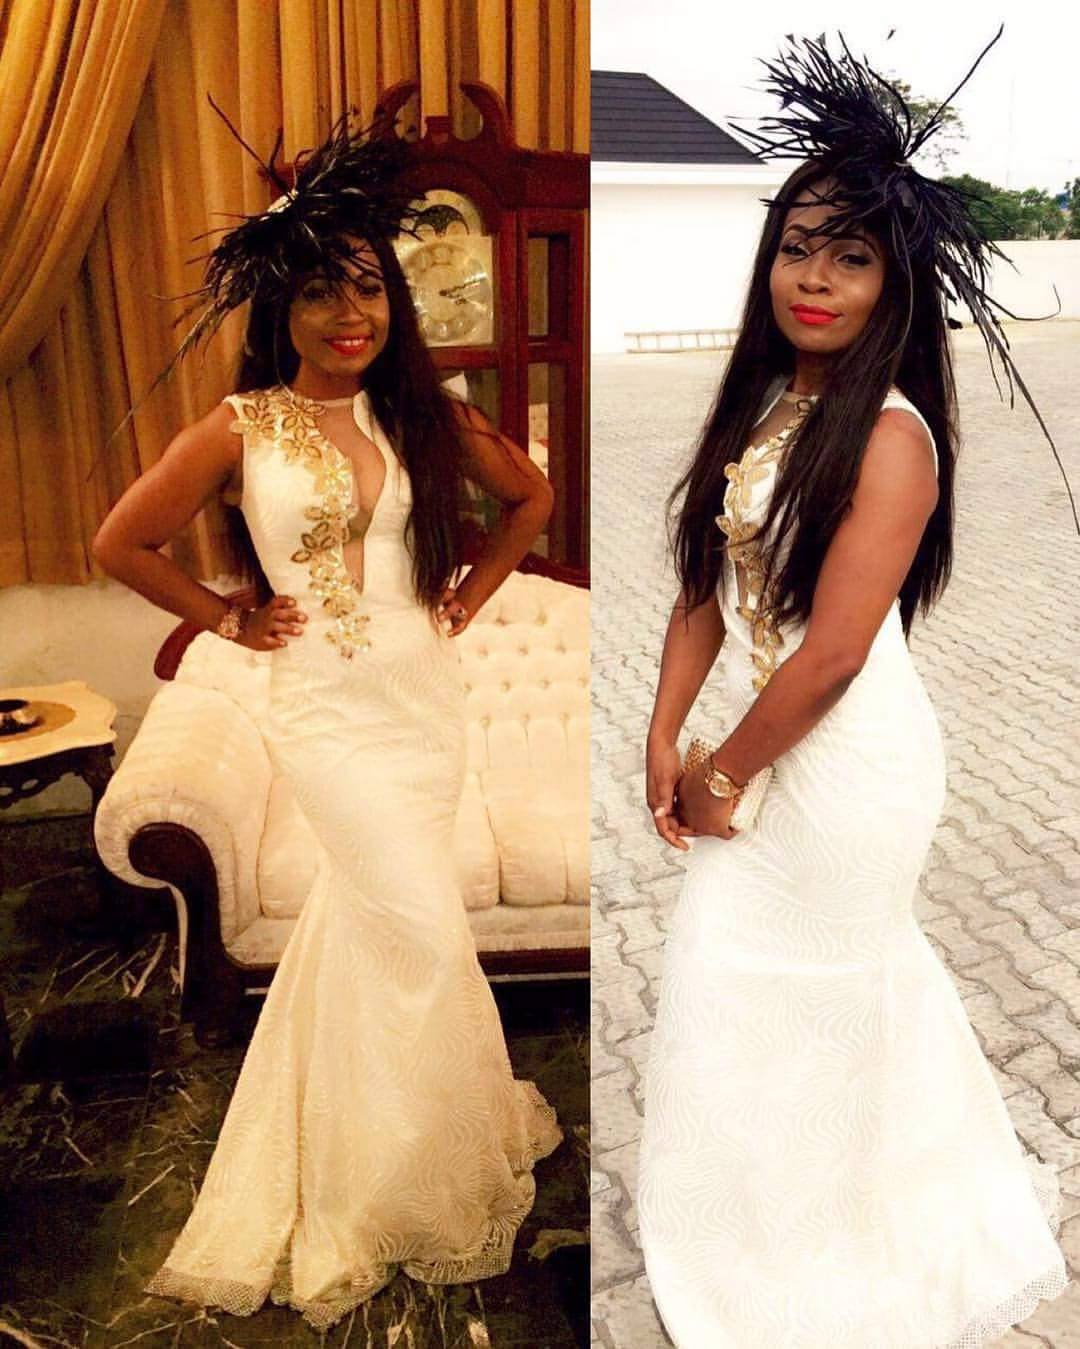 ... accessorise their hair with elaborate fascinators at weddings and other  social events. Here is some proof that African women too can wear a  fascinator 1010939913e